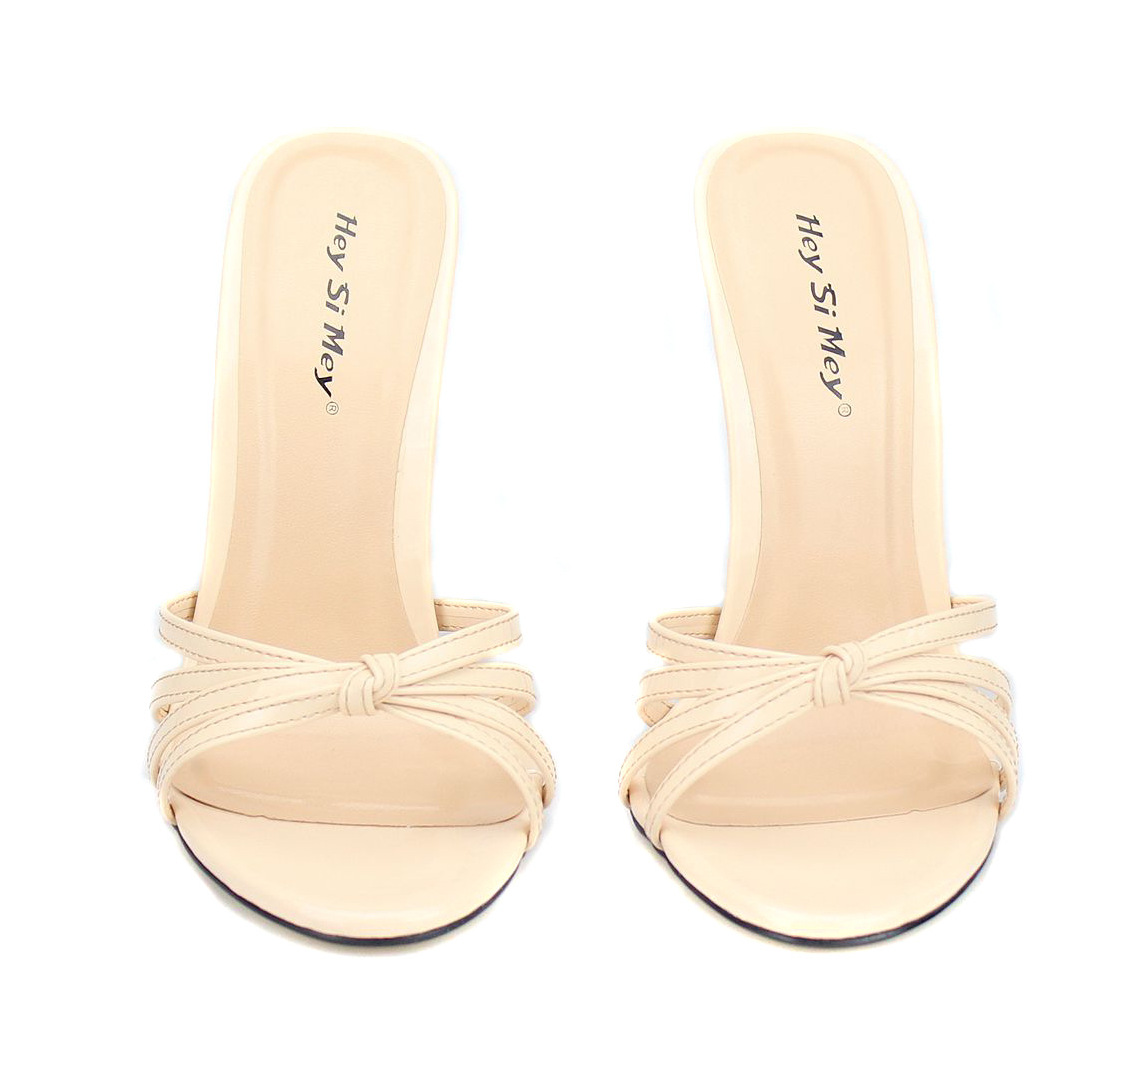 High heels slippers new sandals inexpensive